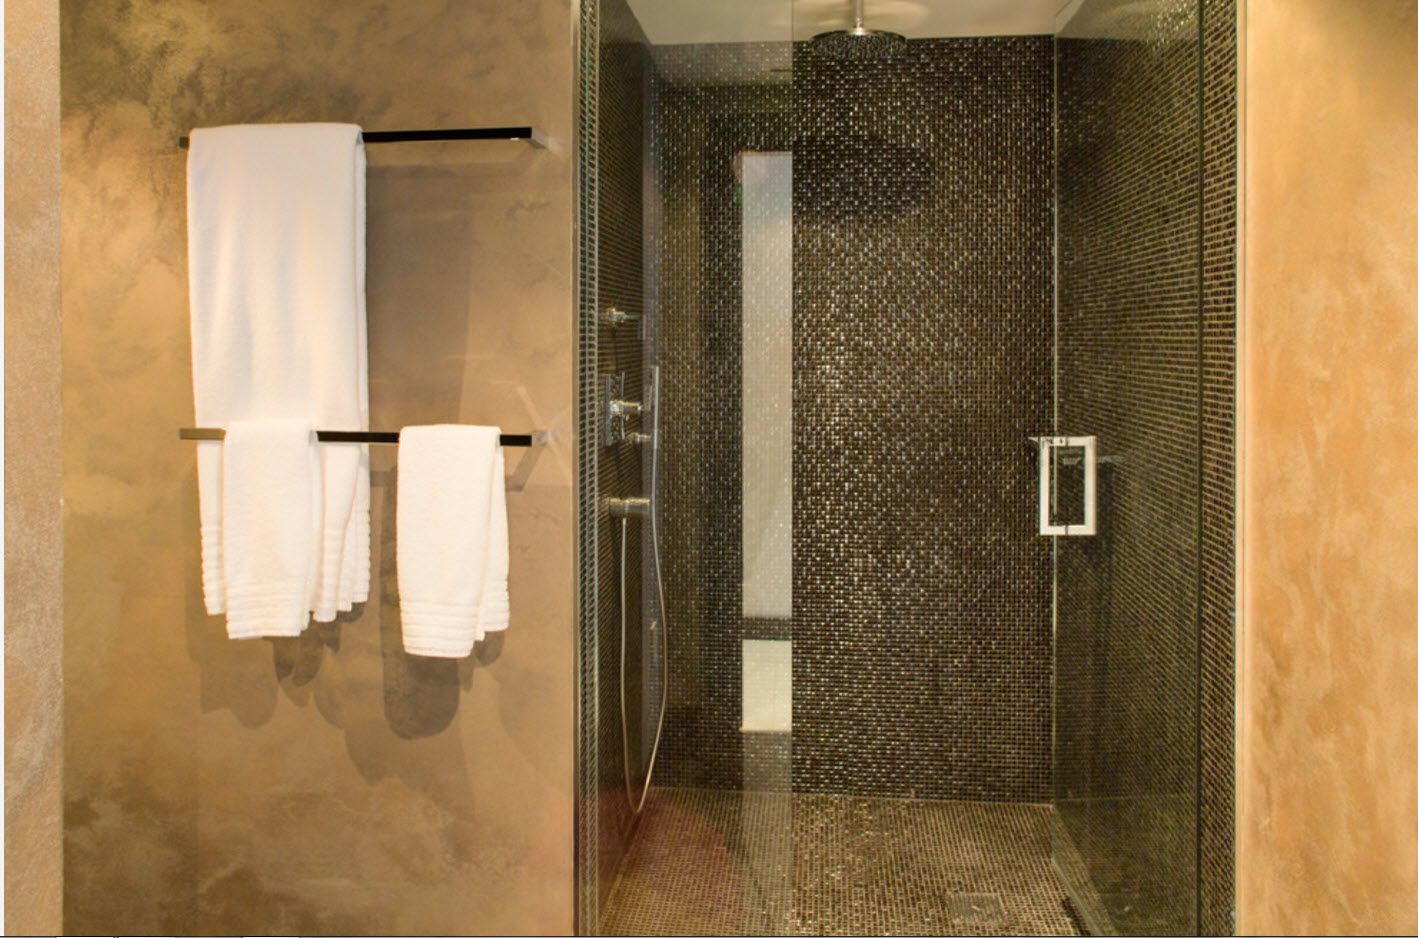 Noble African style interior of the bathroom in chocolate and wenge colors